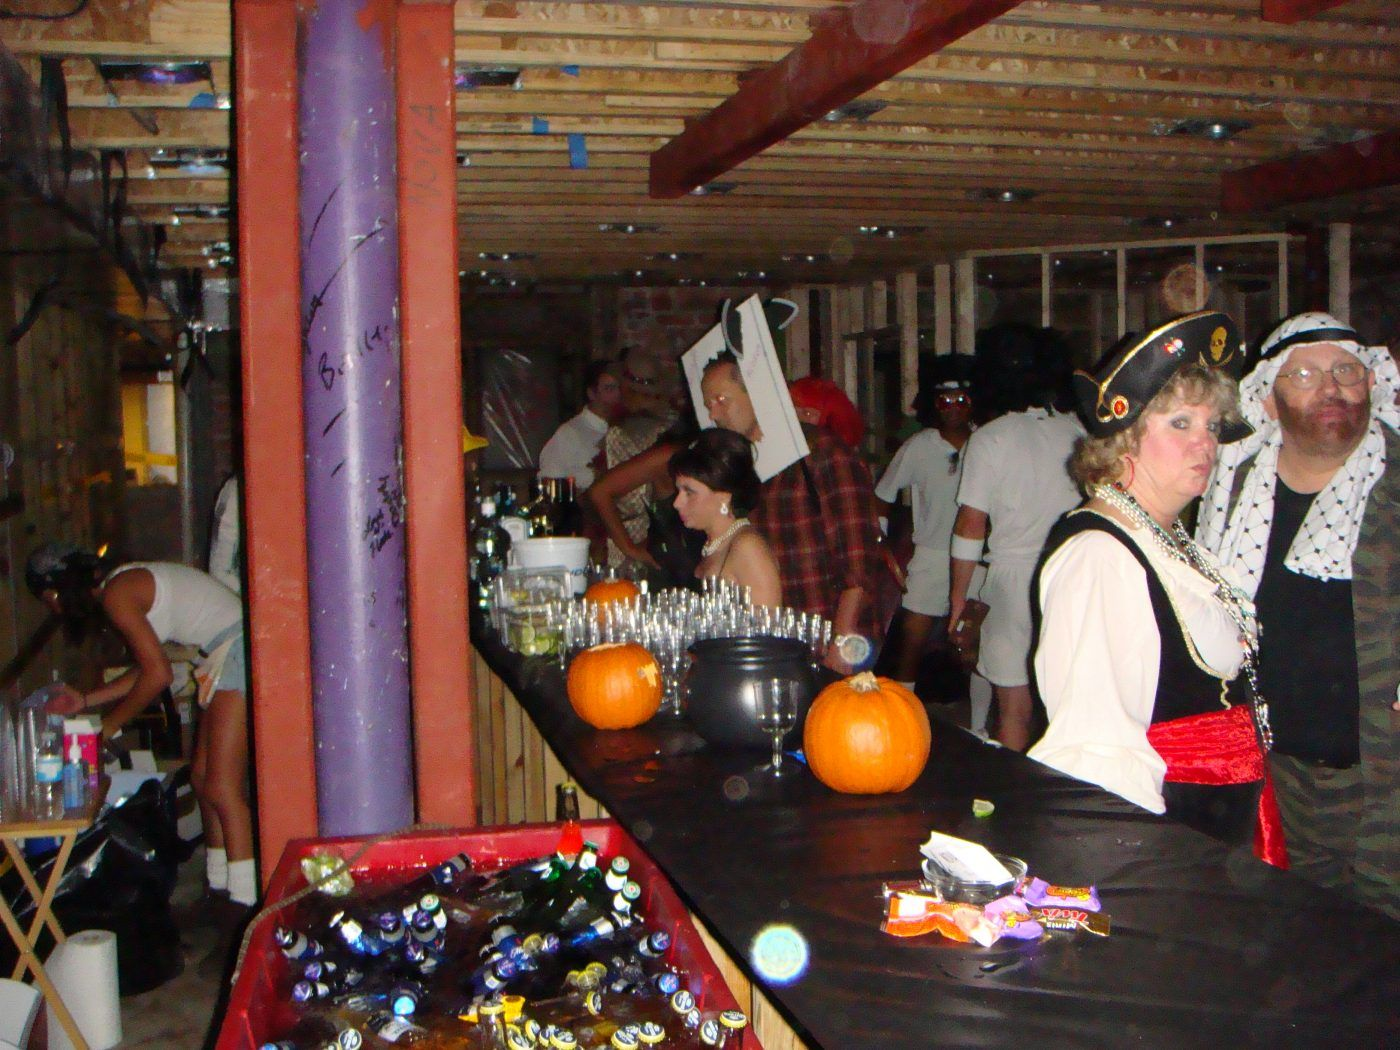 2007-10-31-novaween-1-open-bar